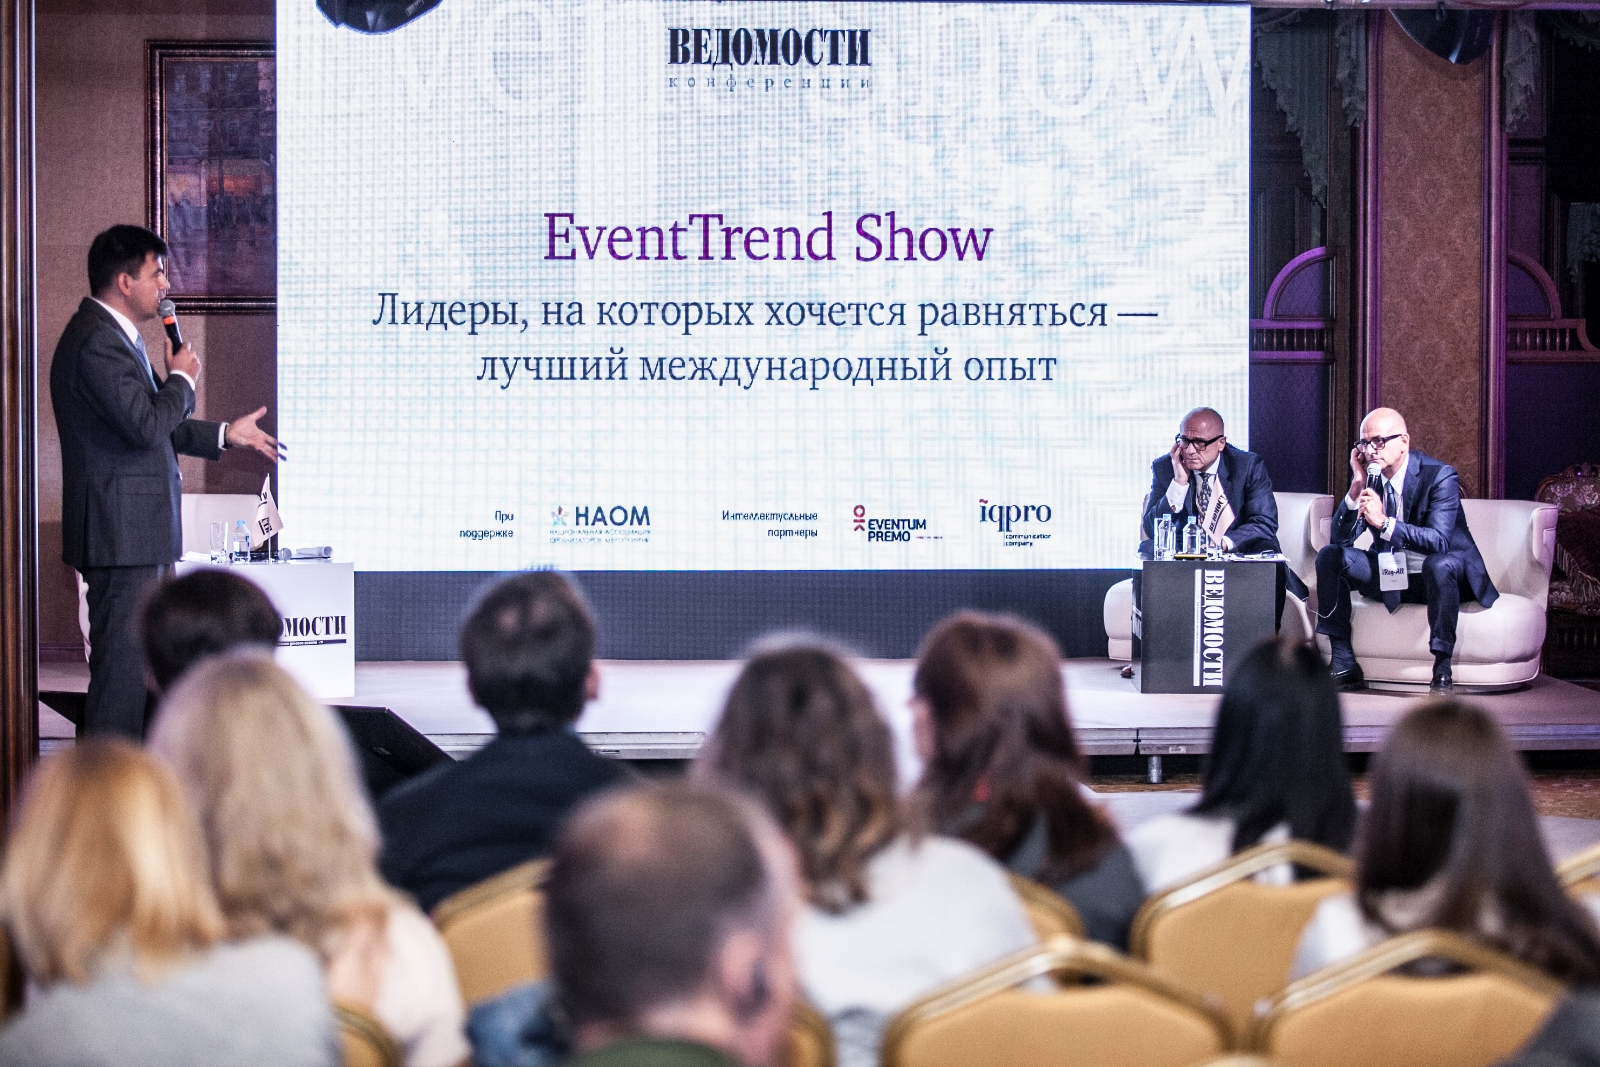 027 EventTrend Show